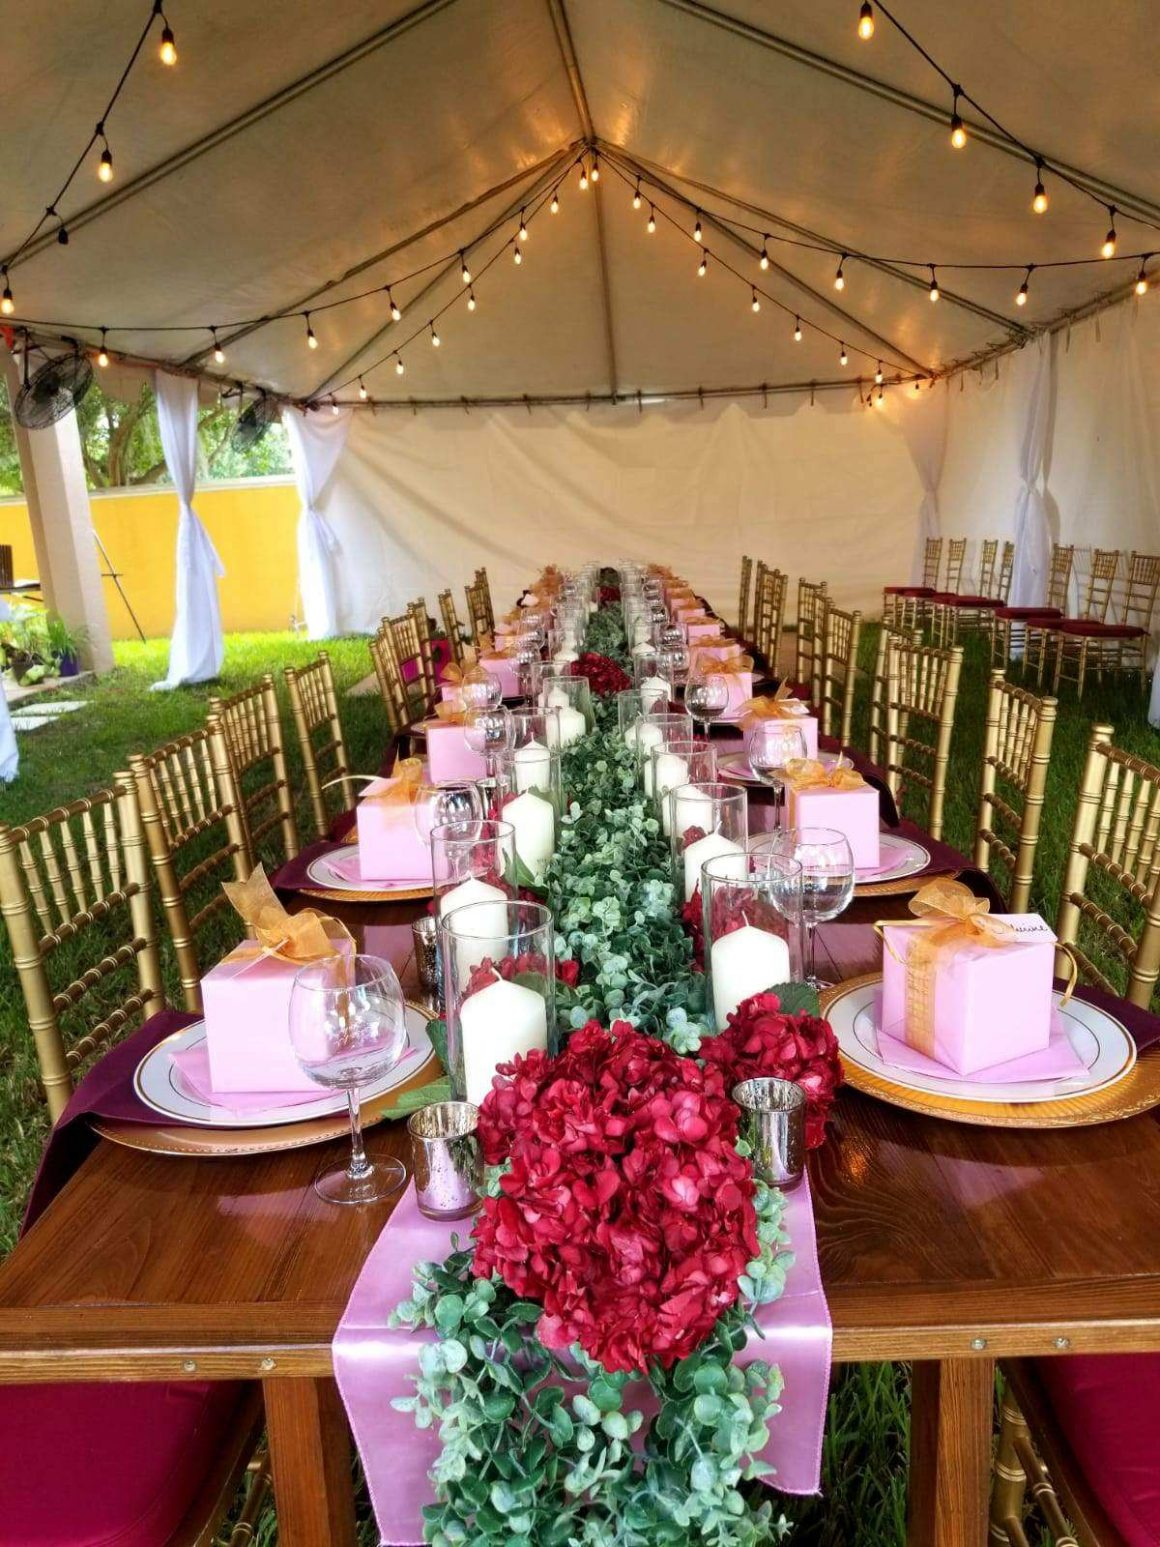 Tent Rentals For Weddings Clearwater Fl Call 727 308 2138